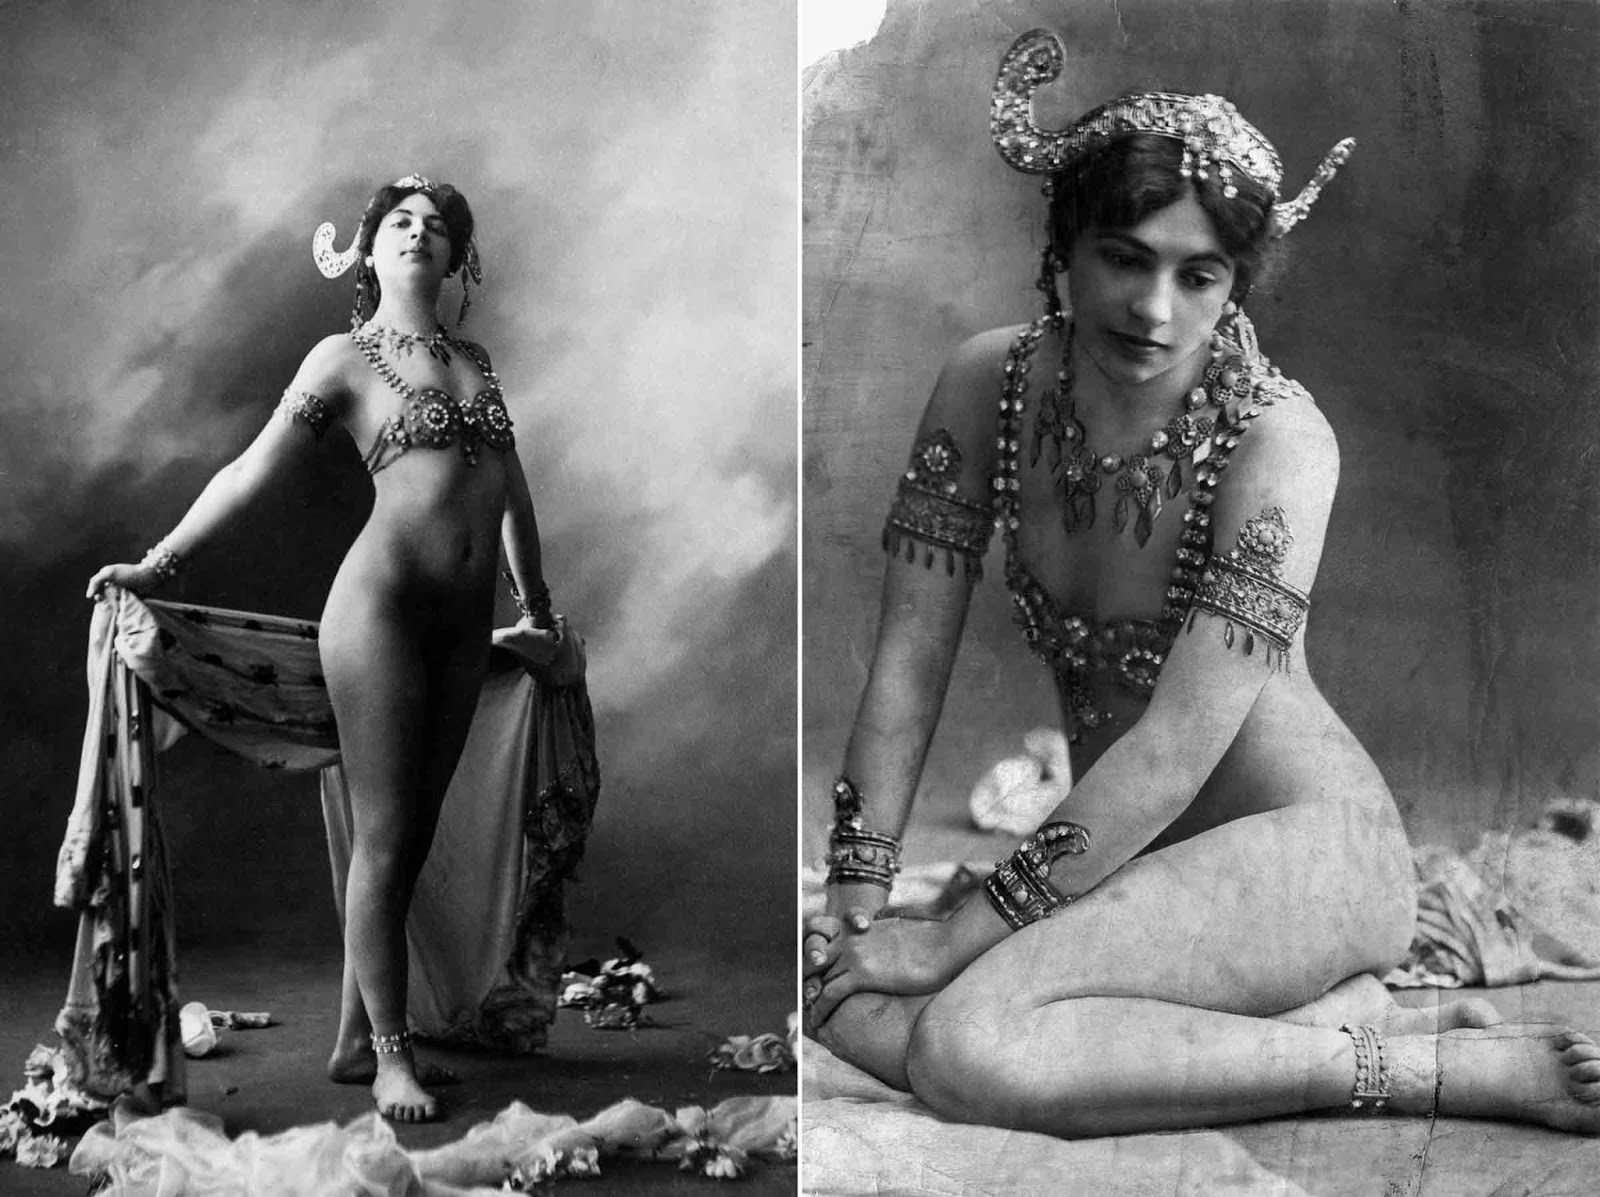 Mata Hari brought a carefree provocative style to the stage in her act, which garnered wide acclaim. The most celebrated segment of her act was her progressive shedding of clothing until she wore just a jeweled bra and some ornaments upon her arms and head.